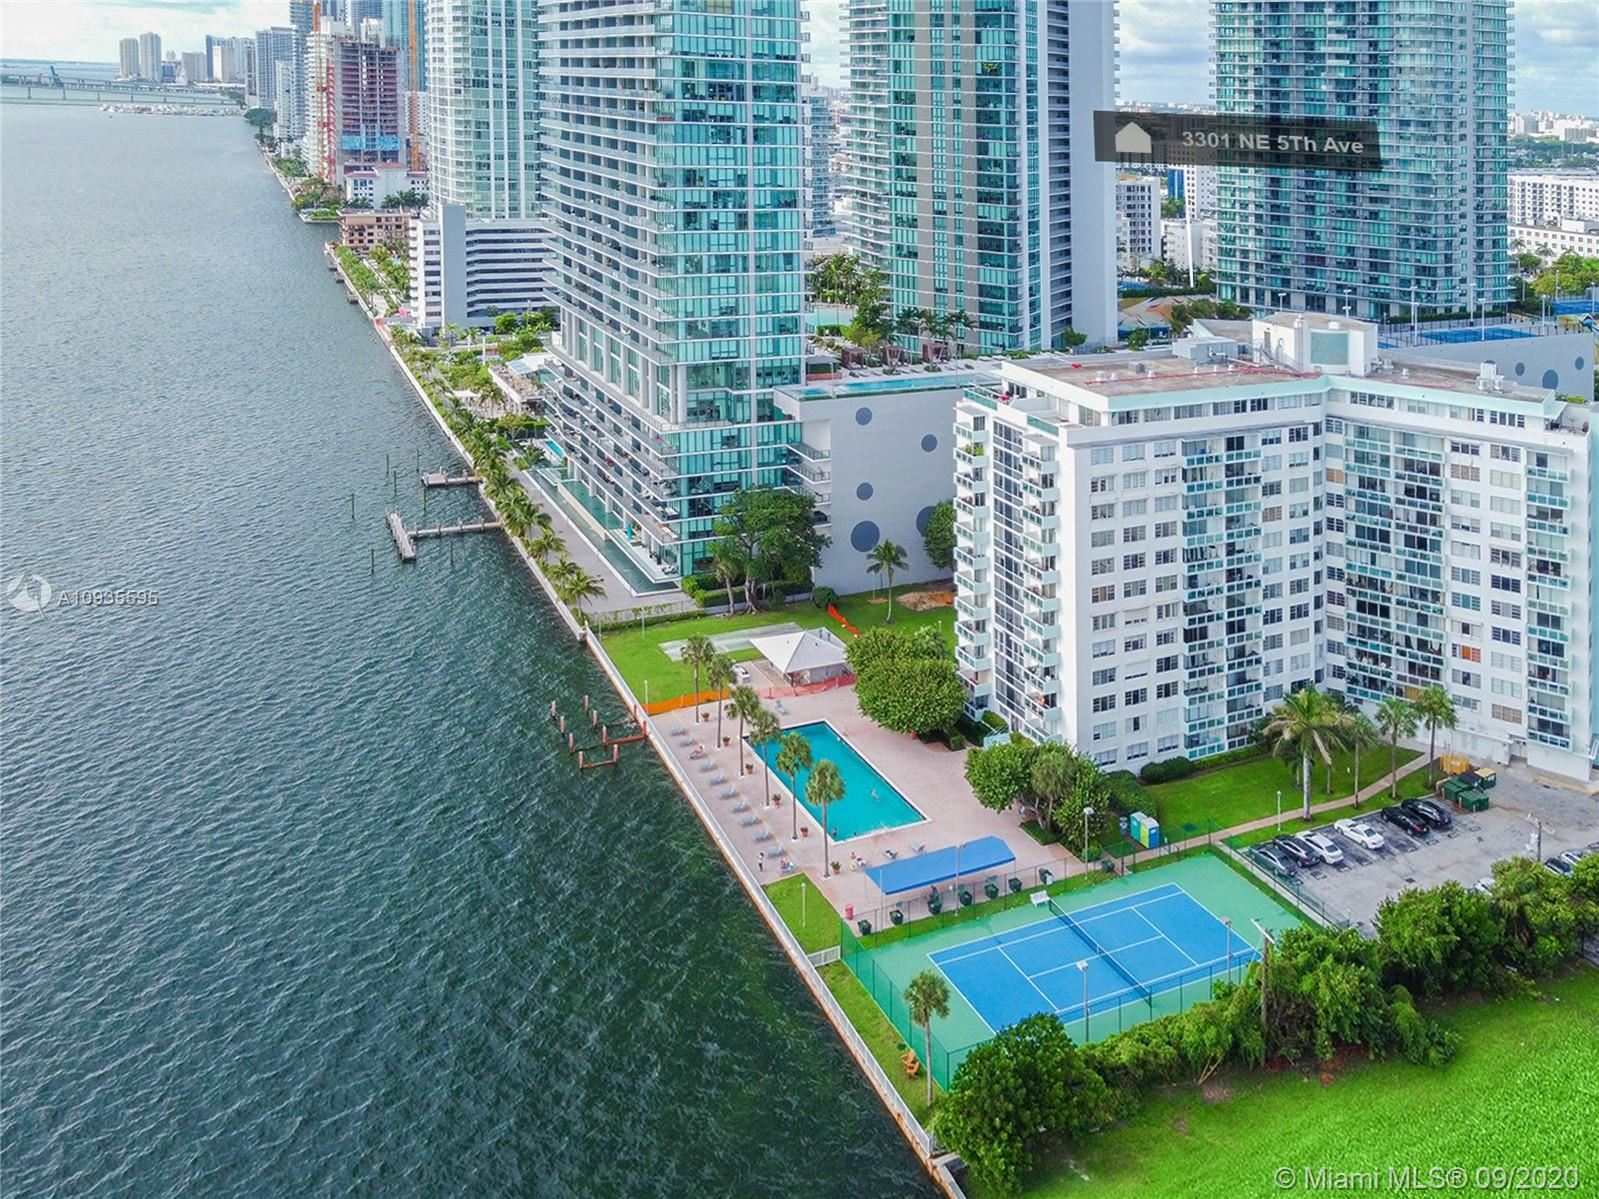 3301 NE 5th Ave #410, Miami, FL 33137 - #: A10935595